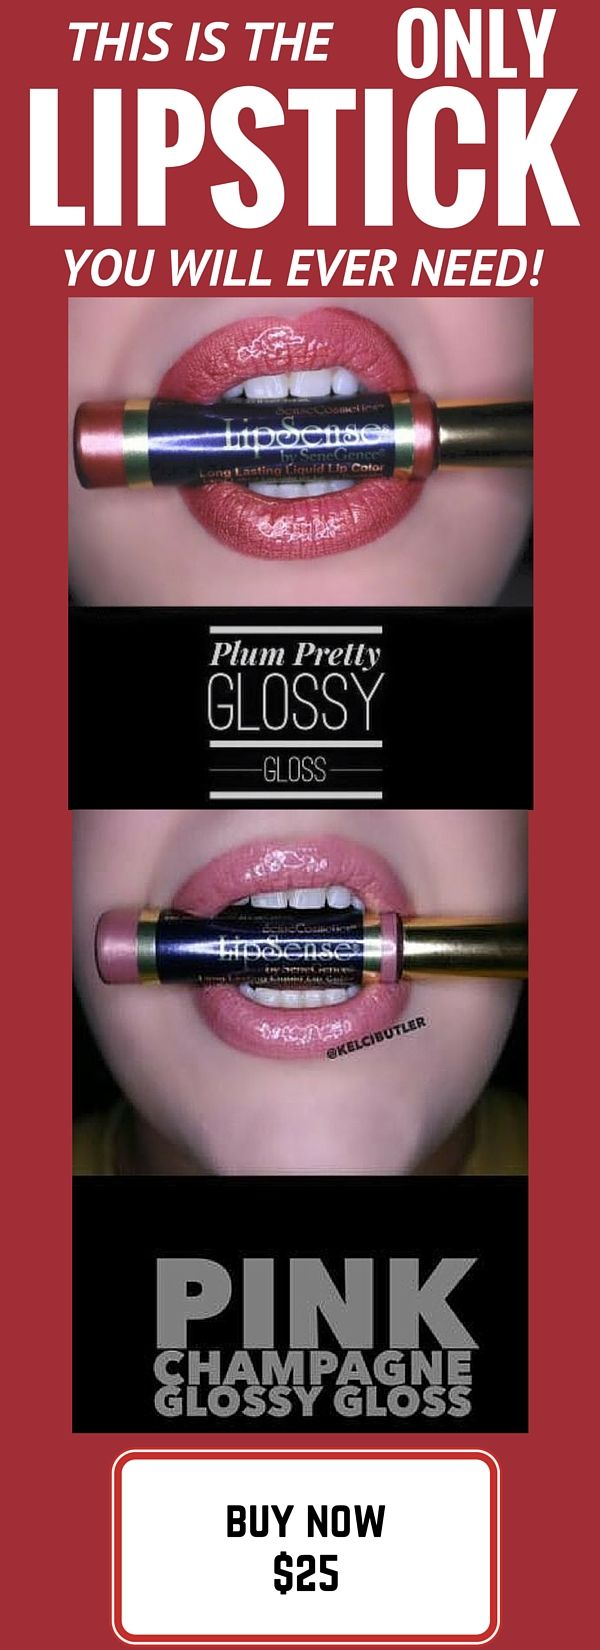 Looking for the best liquid lipstick on the market? Look no further! LipSense is long lasting (up to 18 hours with 1 application), waterproof, smudge-proof and kiss-proof! It is the BEST liquid lip color you will find and it is backed up by our 100% money back guarantee! BUY NOW at http://www.colormylips.net/lipsense-colors. REMEMBER ONE TUBE OF LIPSENSE LASTS AS LONG AS 4 TRADITIONAL LIPSTICKS!